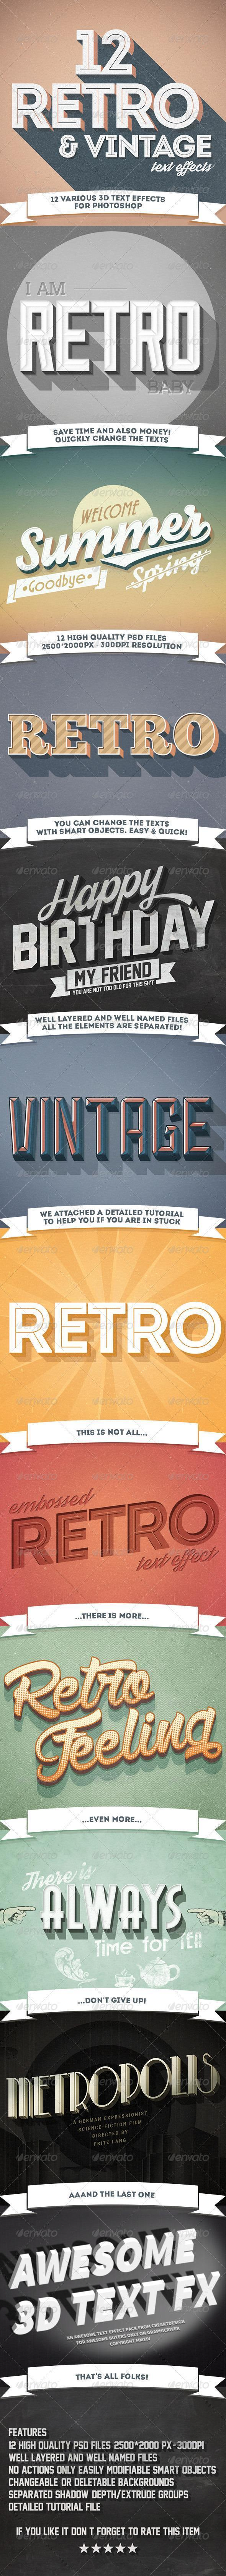 Retro and Vintage Photoshop Text Effects